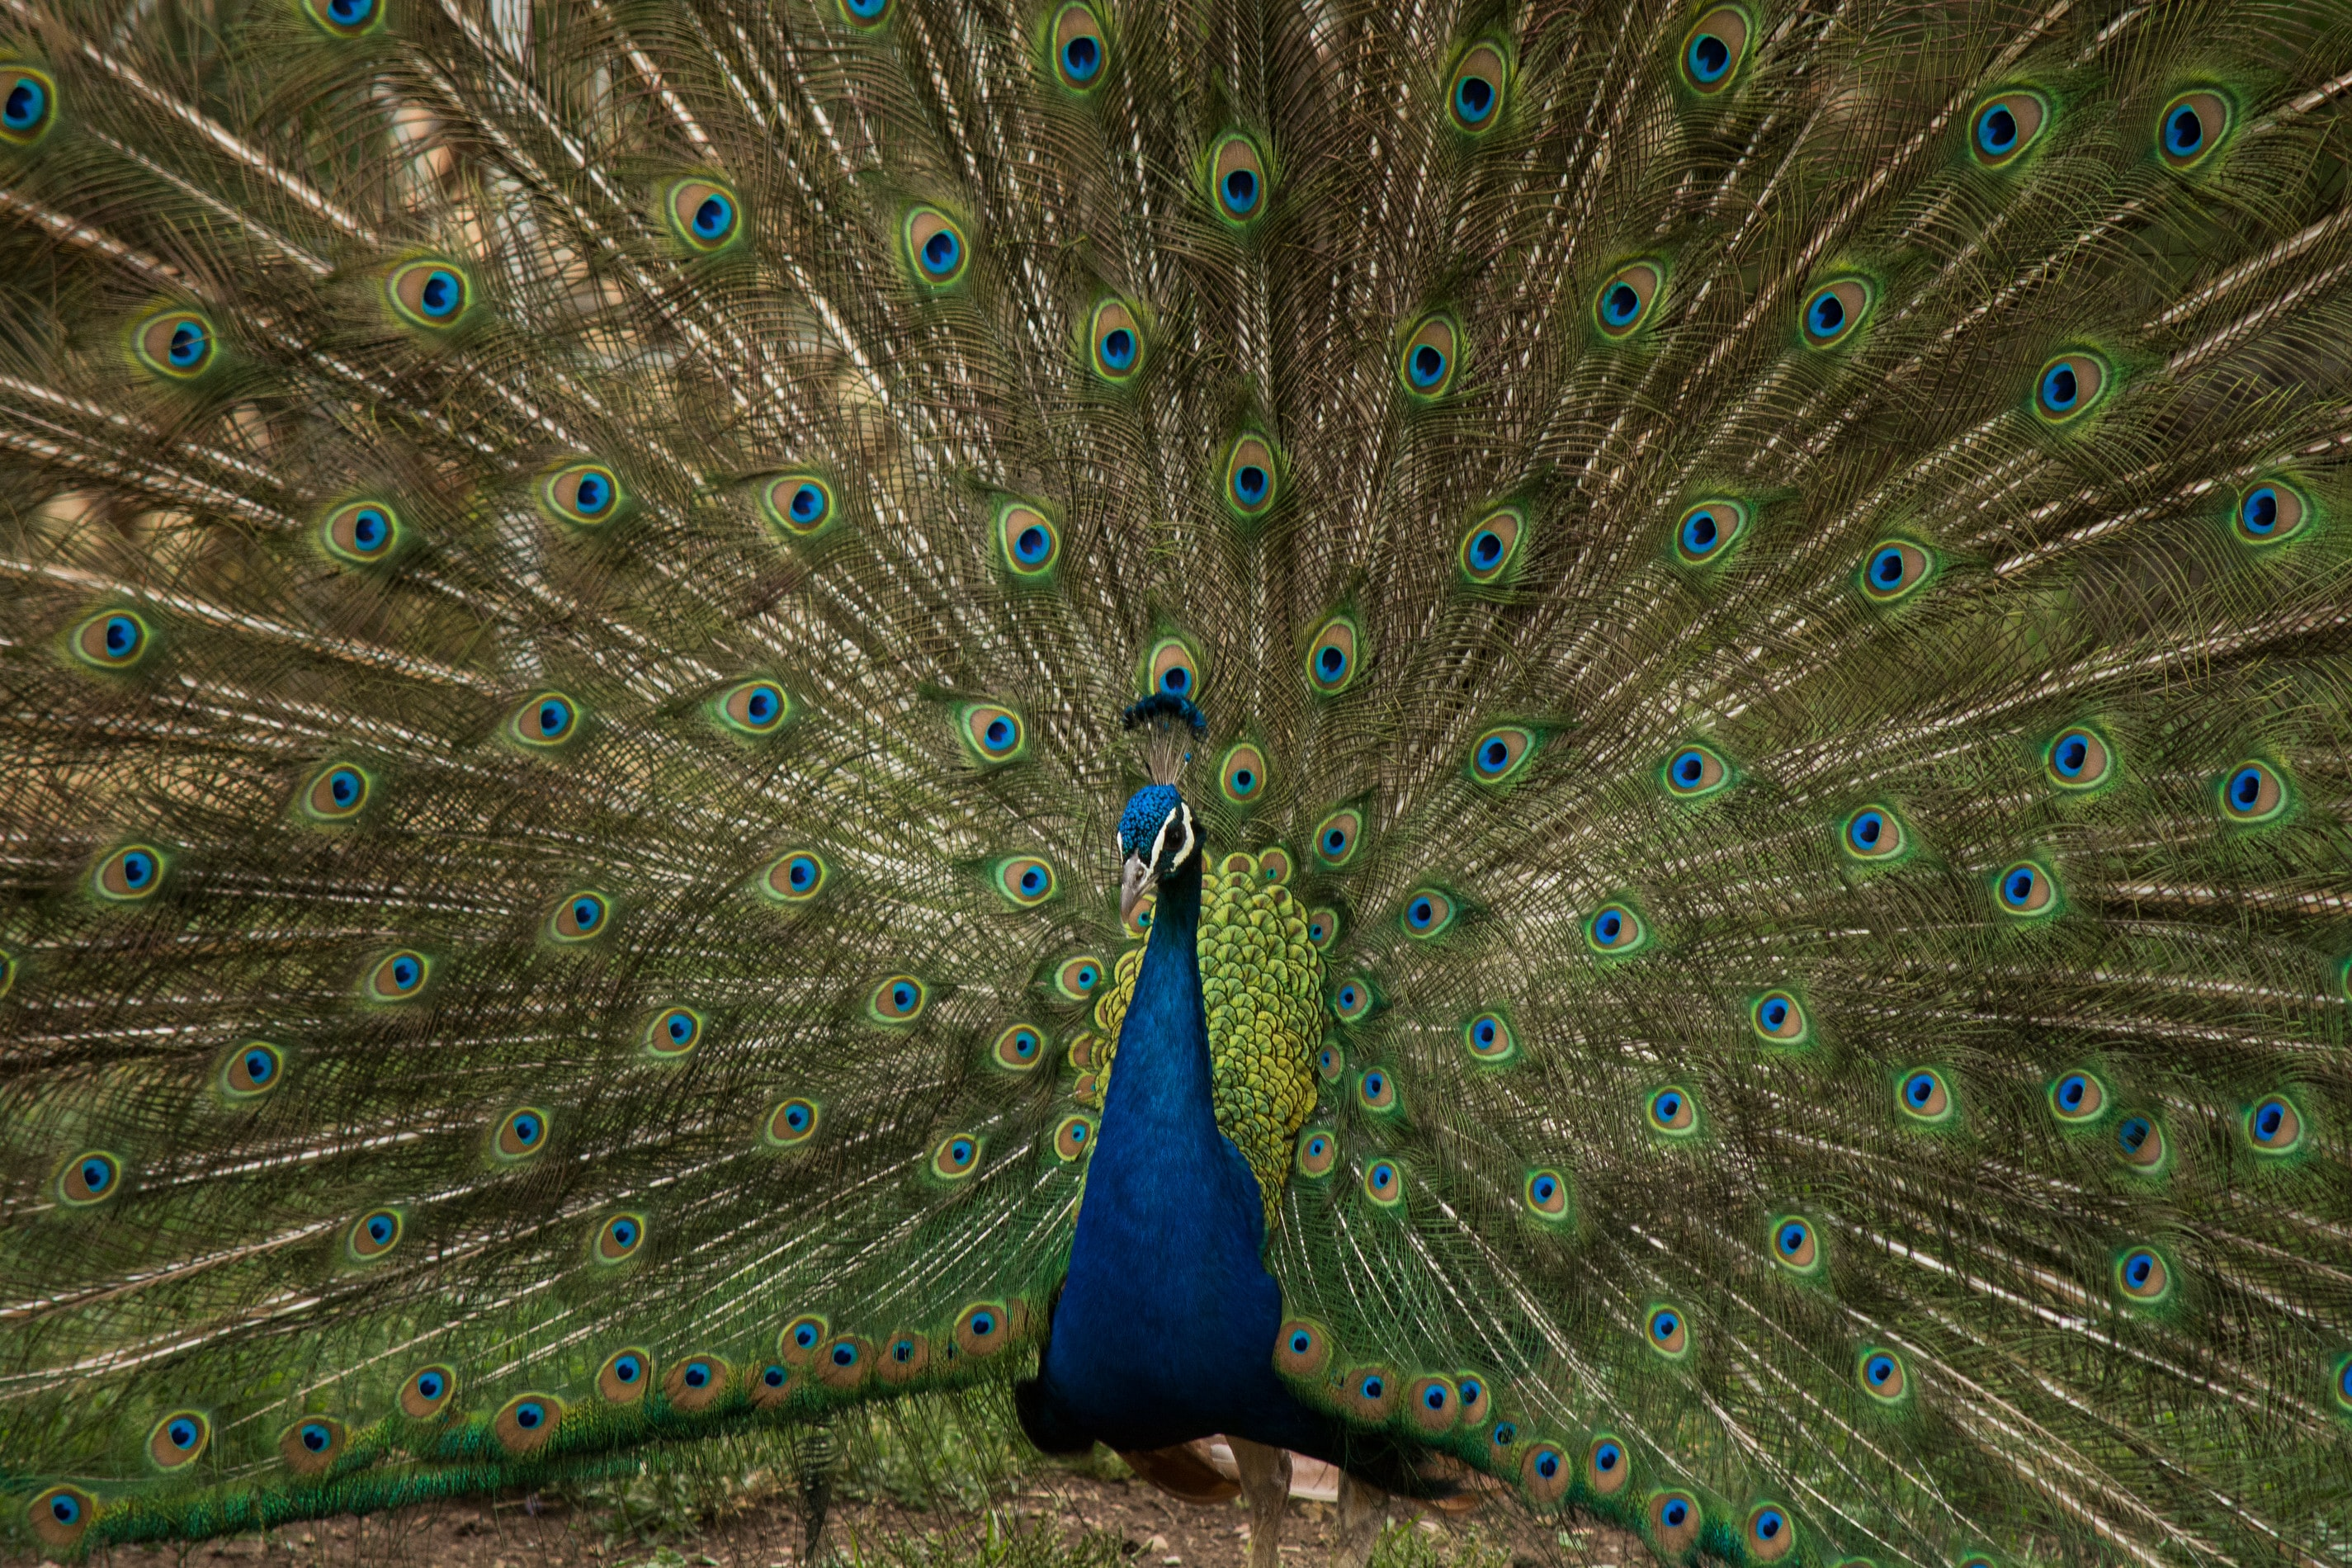 Colorful peacock displays its plumage for a mate